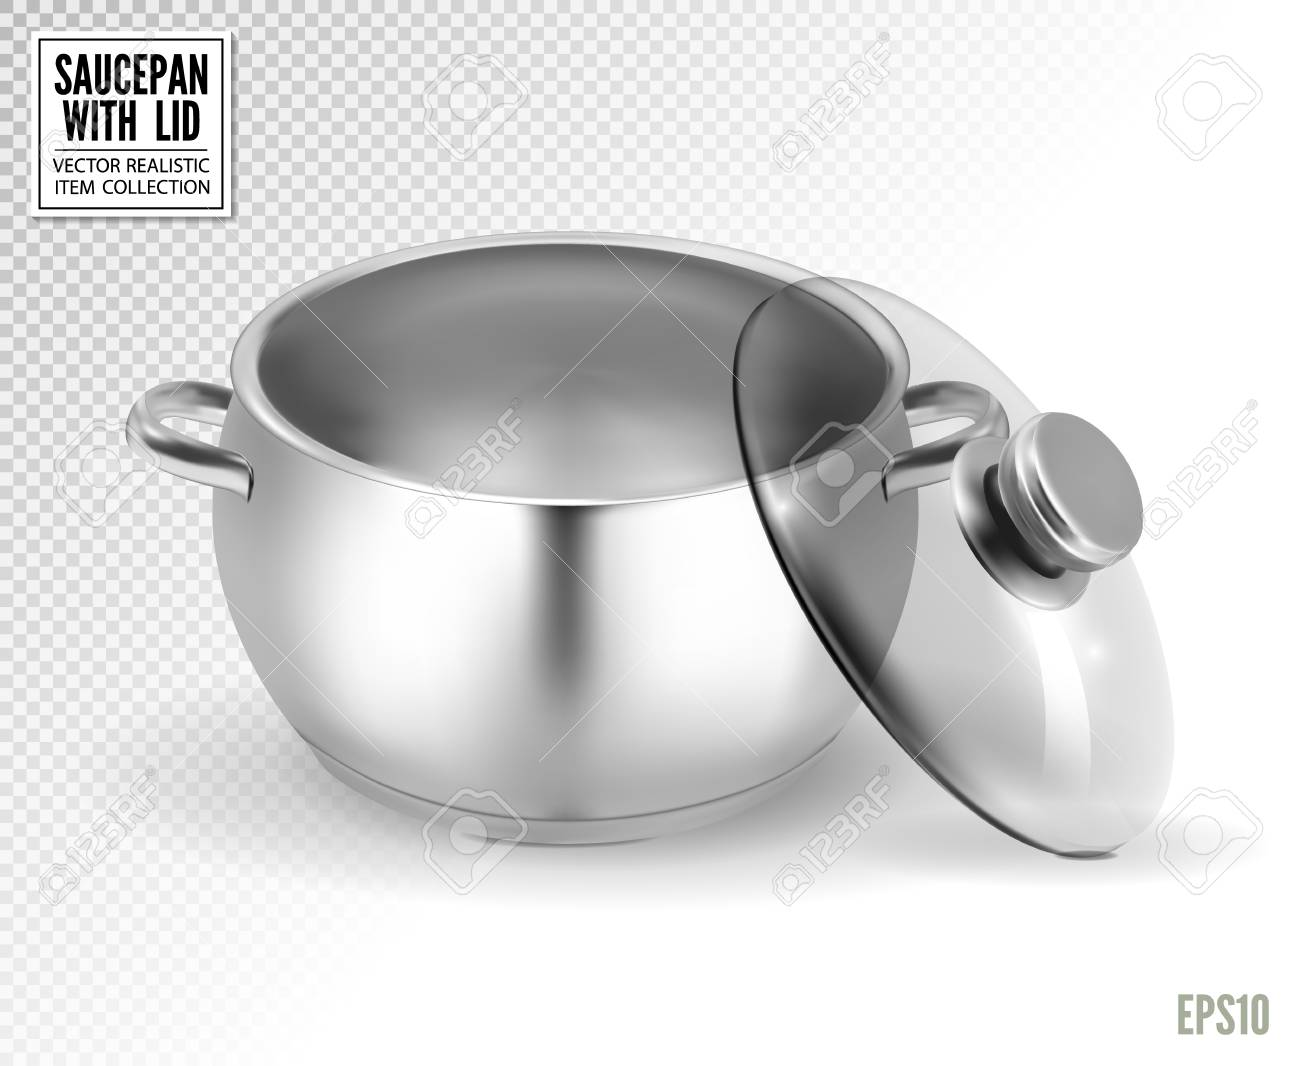 Steel saucepan with glass lid on a transparent background. Vector illustration template ready for your design. EPS10. - 110270665